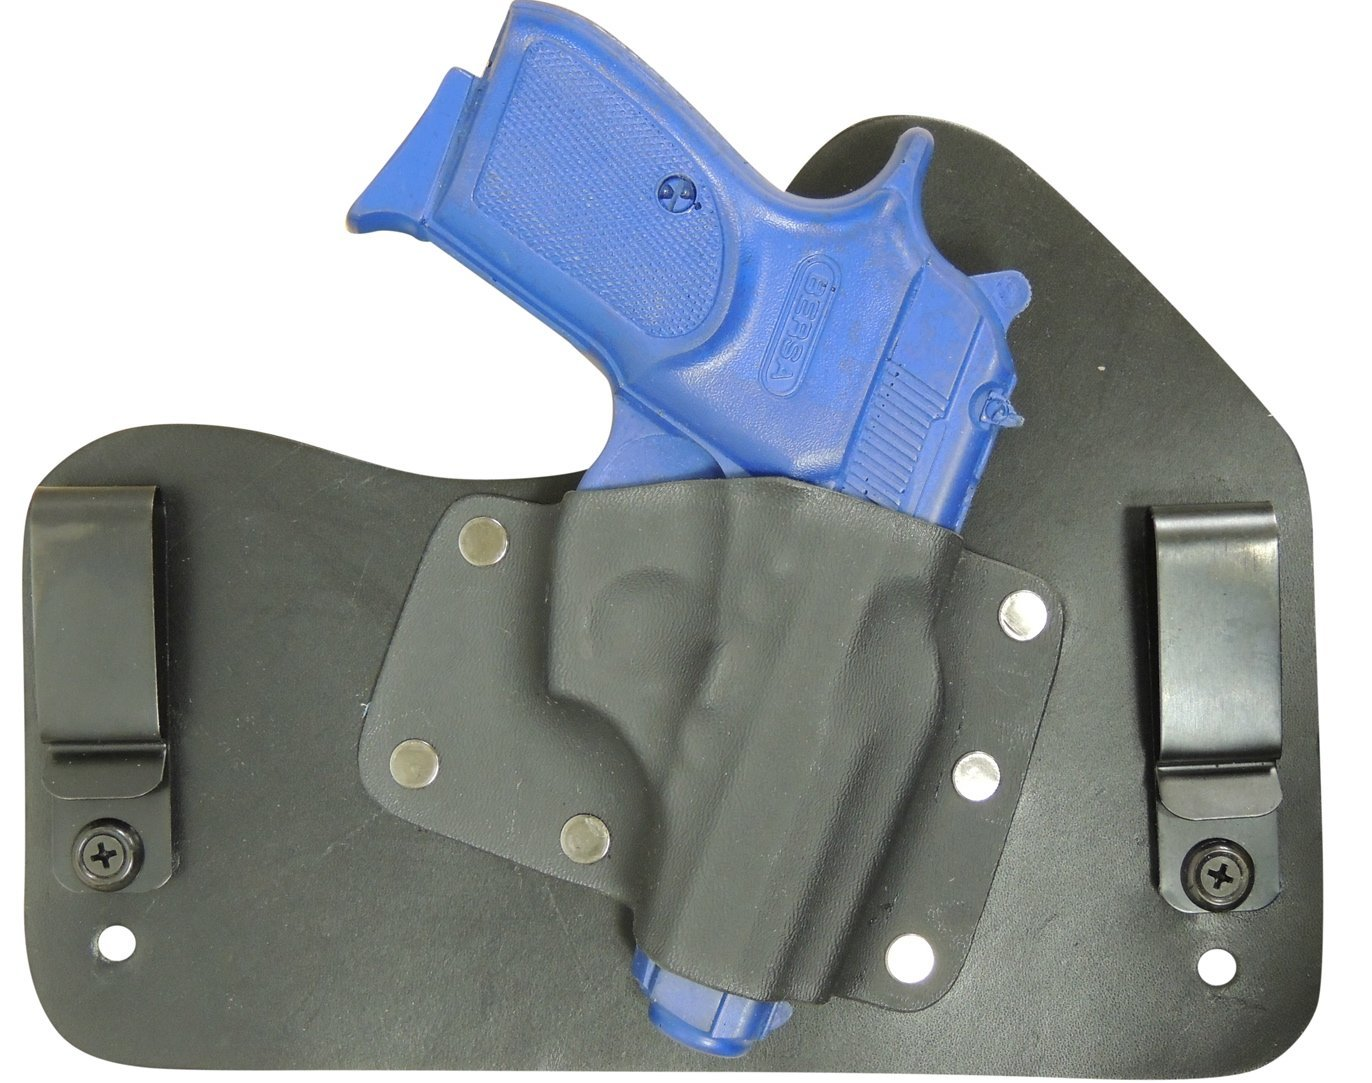 Everyday Holsters Bersa Thunder .380 Hybrid Holster IWB Right Hand